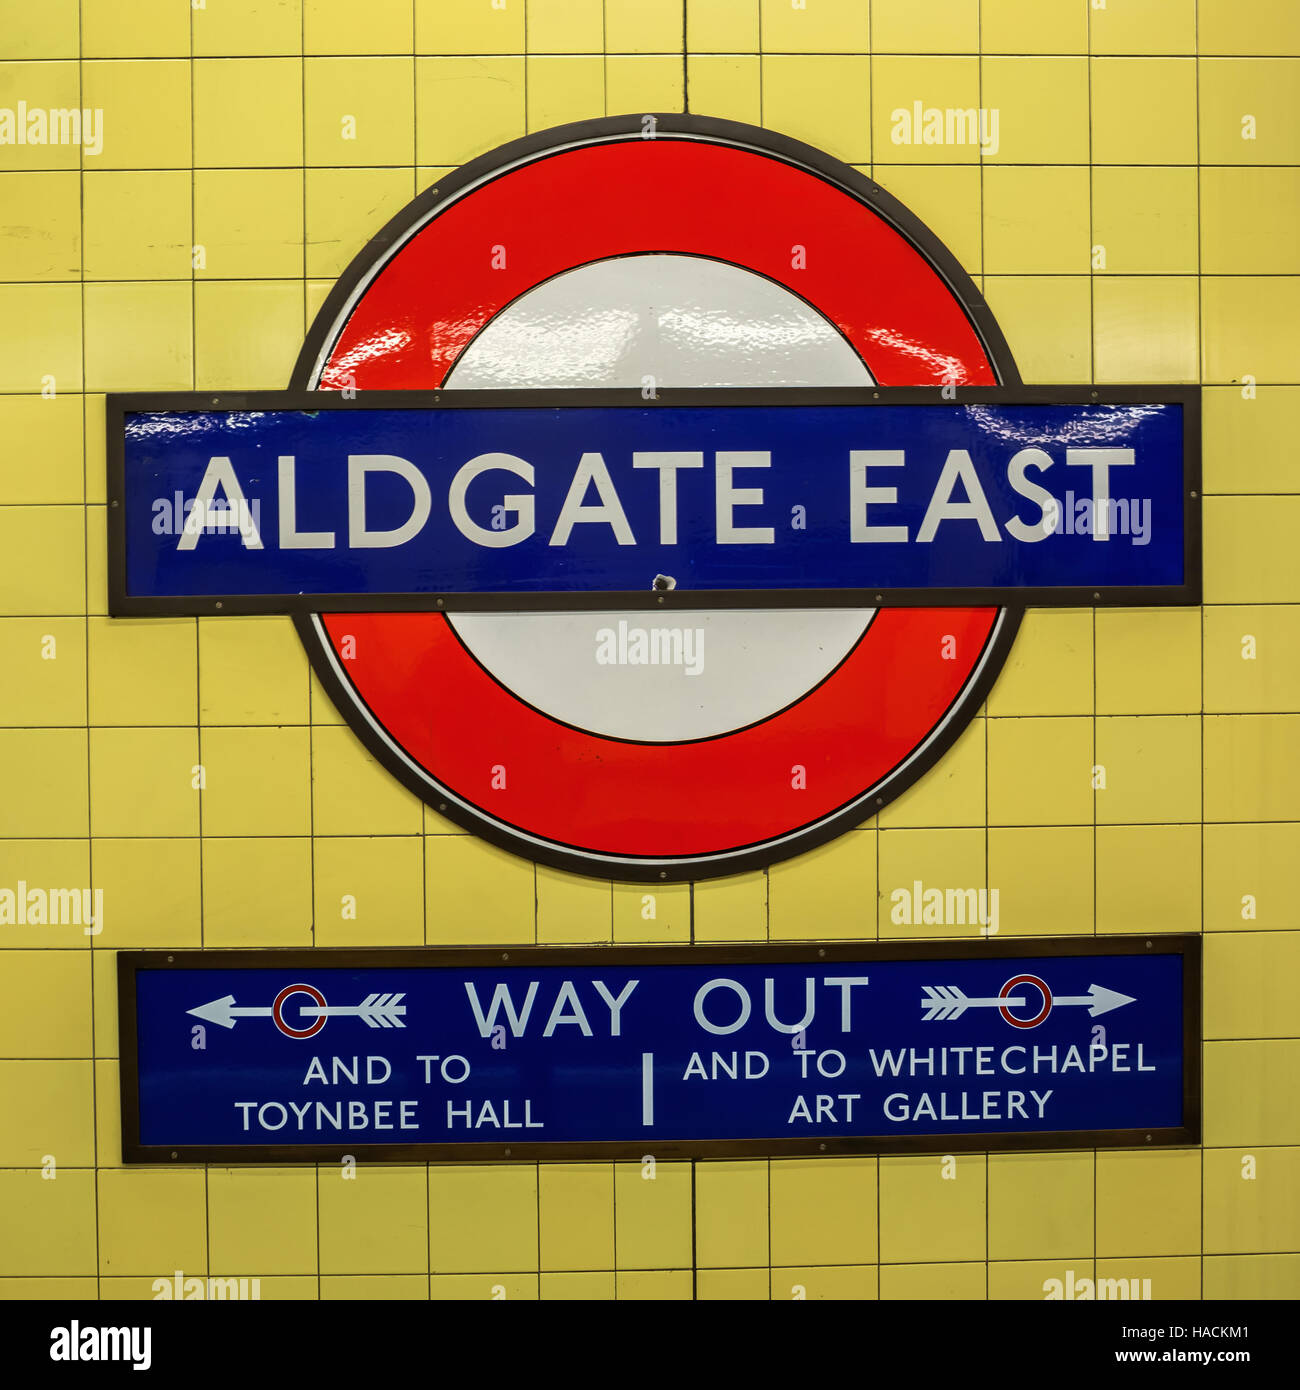 Logo Of The Underground Station Aldgate East In London Stock Photo